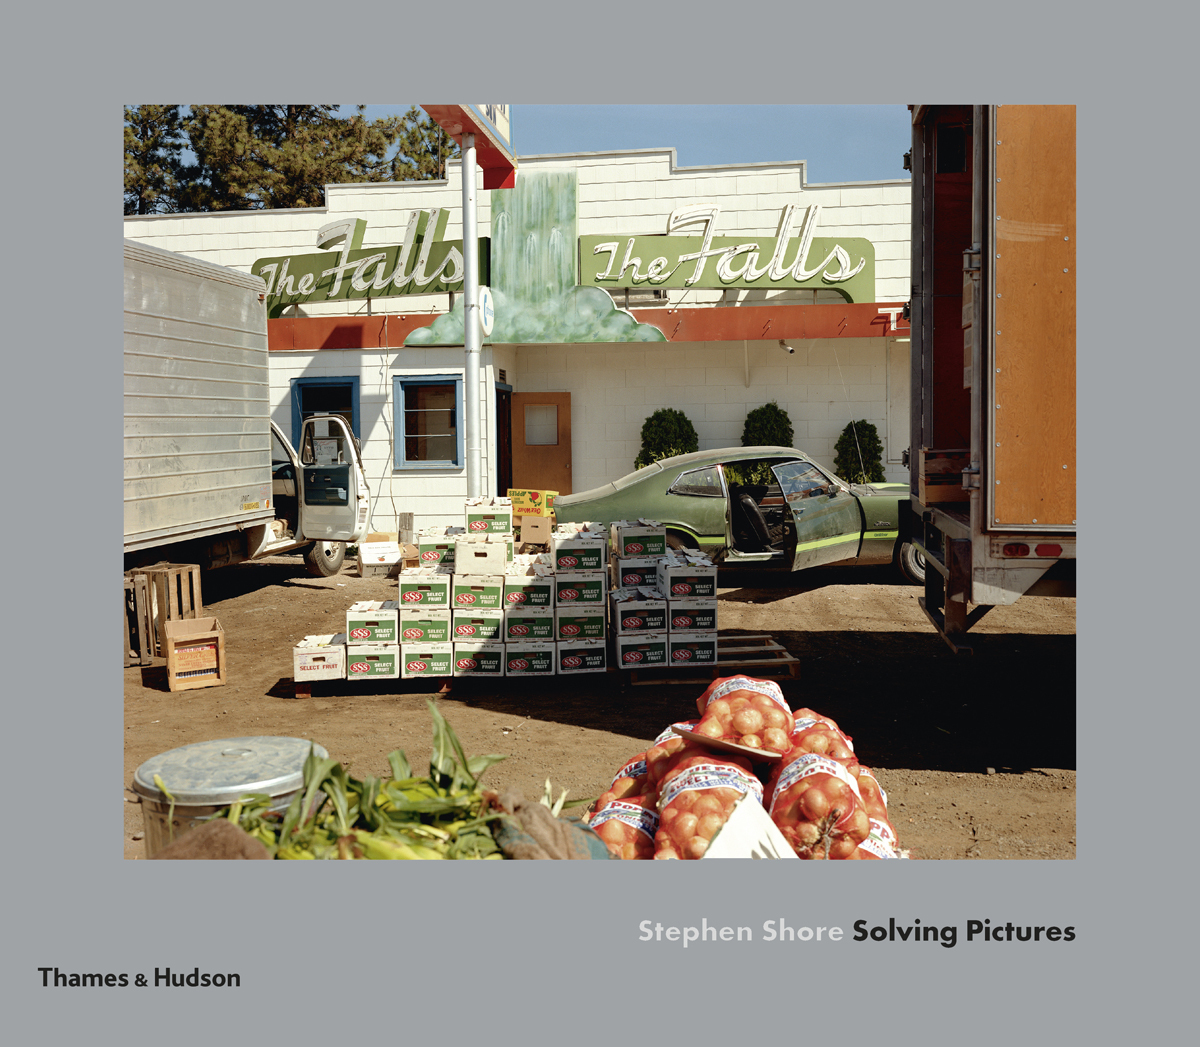 STEPHEN SHORE SOLVING PICTURES /ANGLAIS